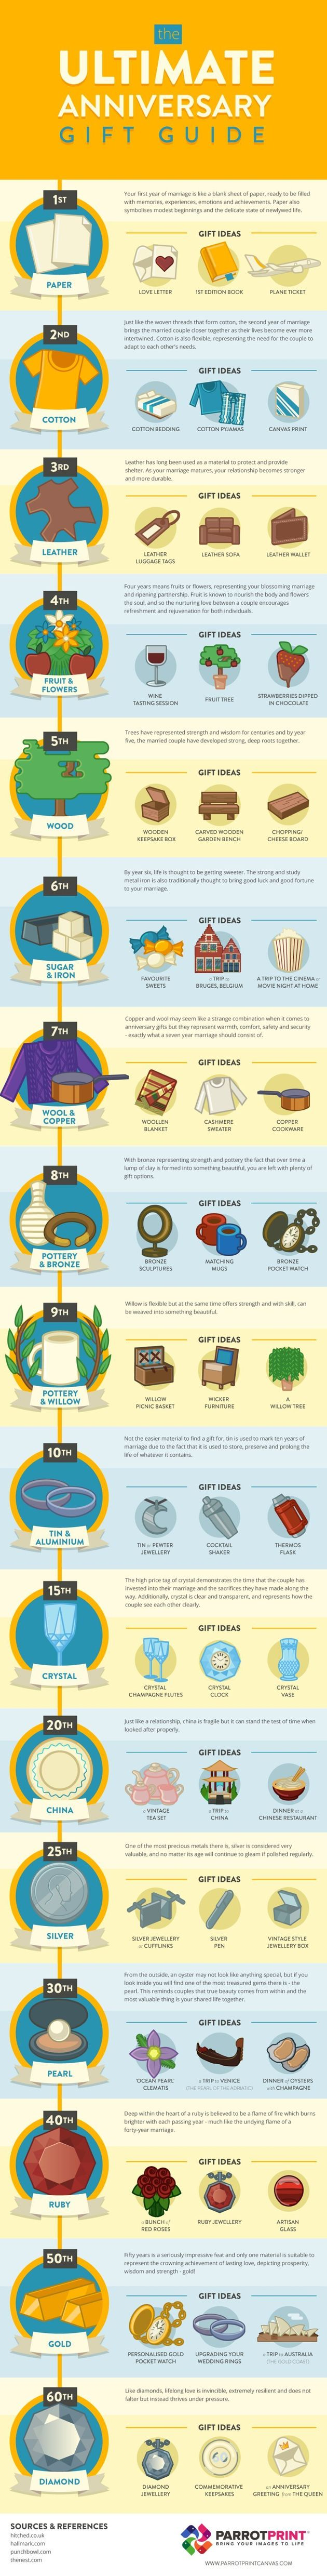 A Guide To Traditional Anniversary Gifts And Modern